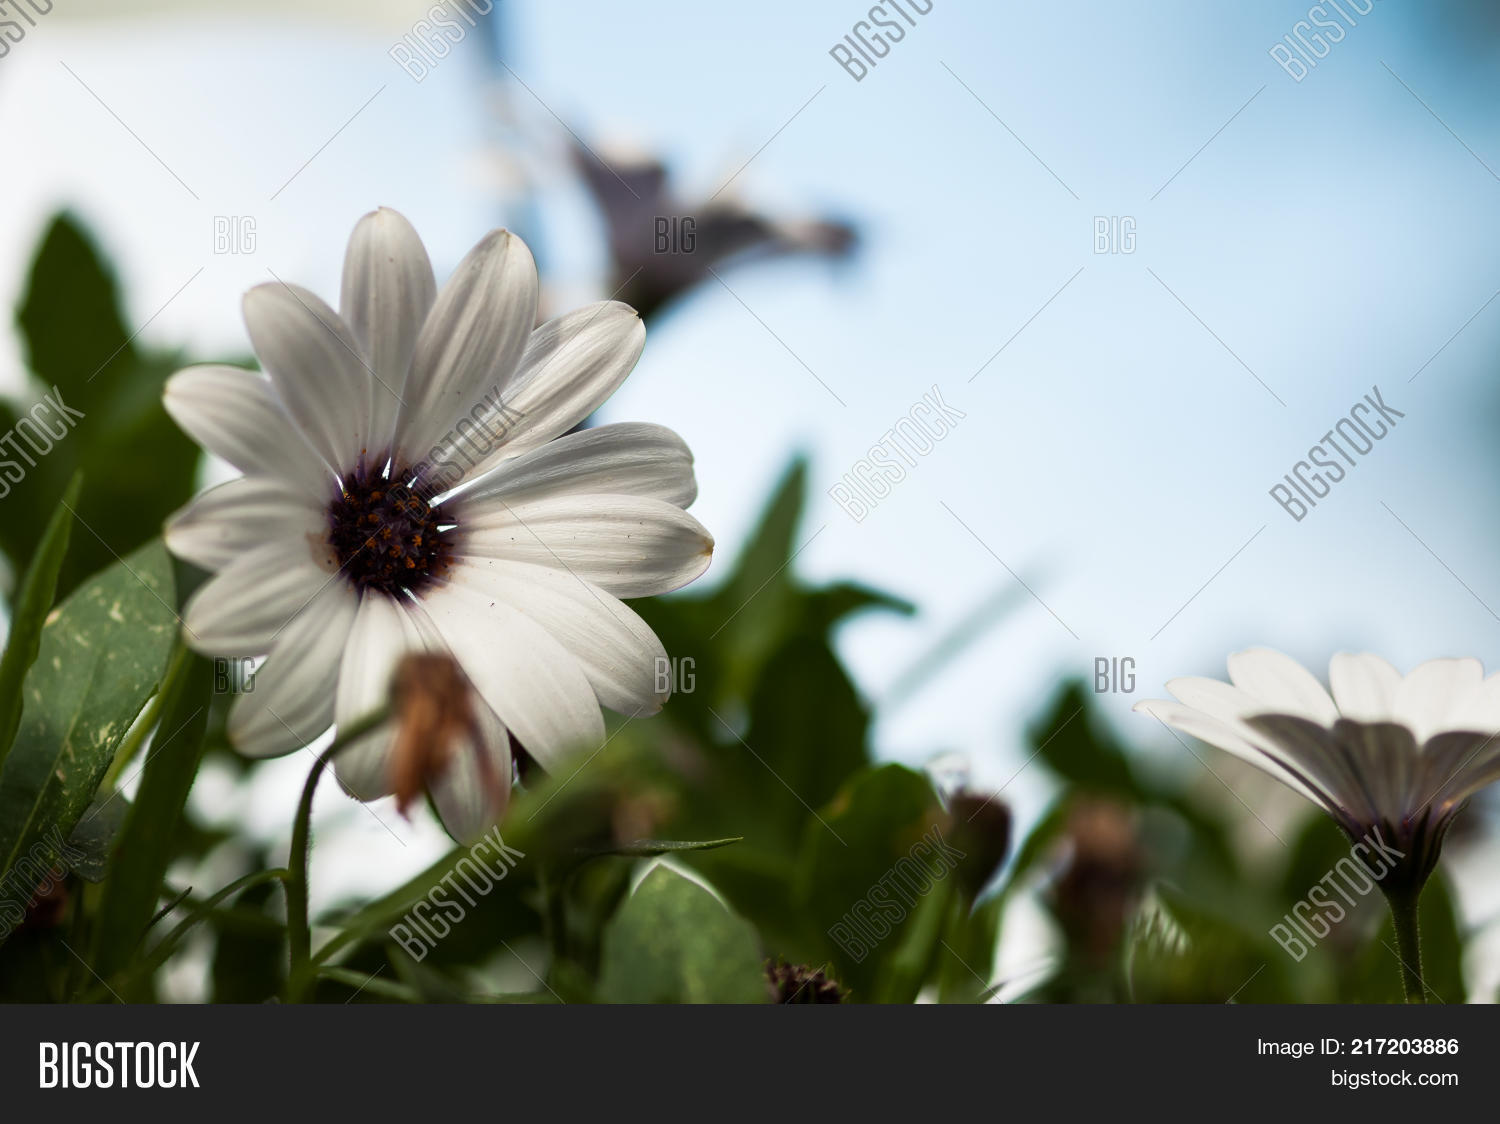 White African Daisy Image Photo Free Trial Bigstock